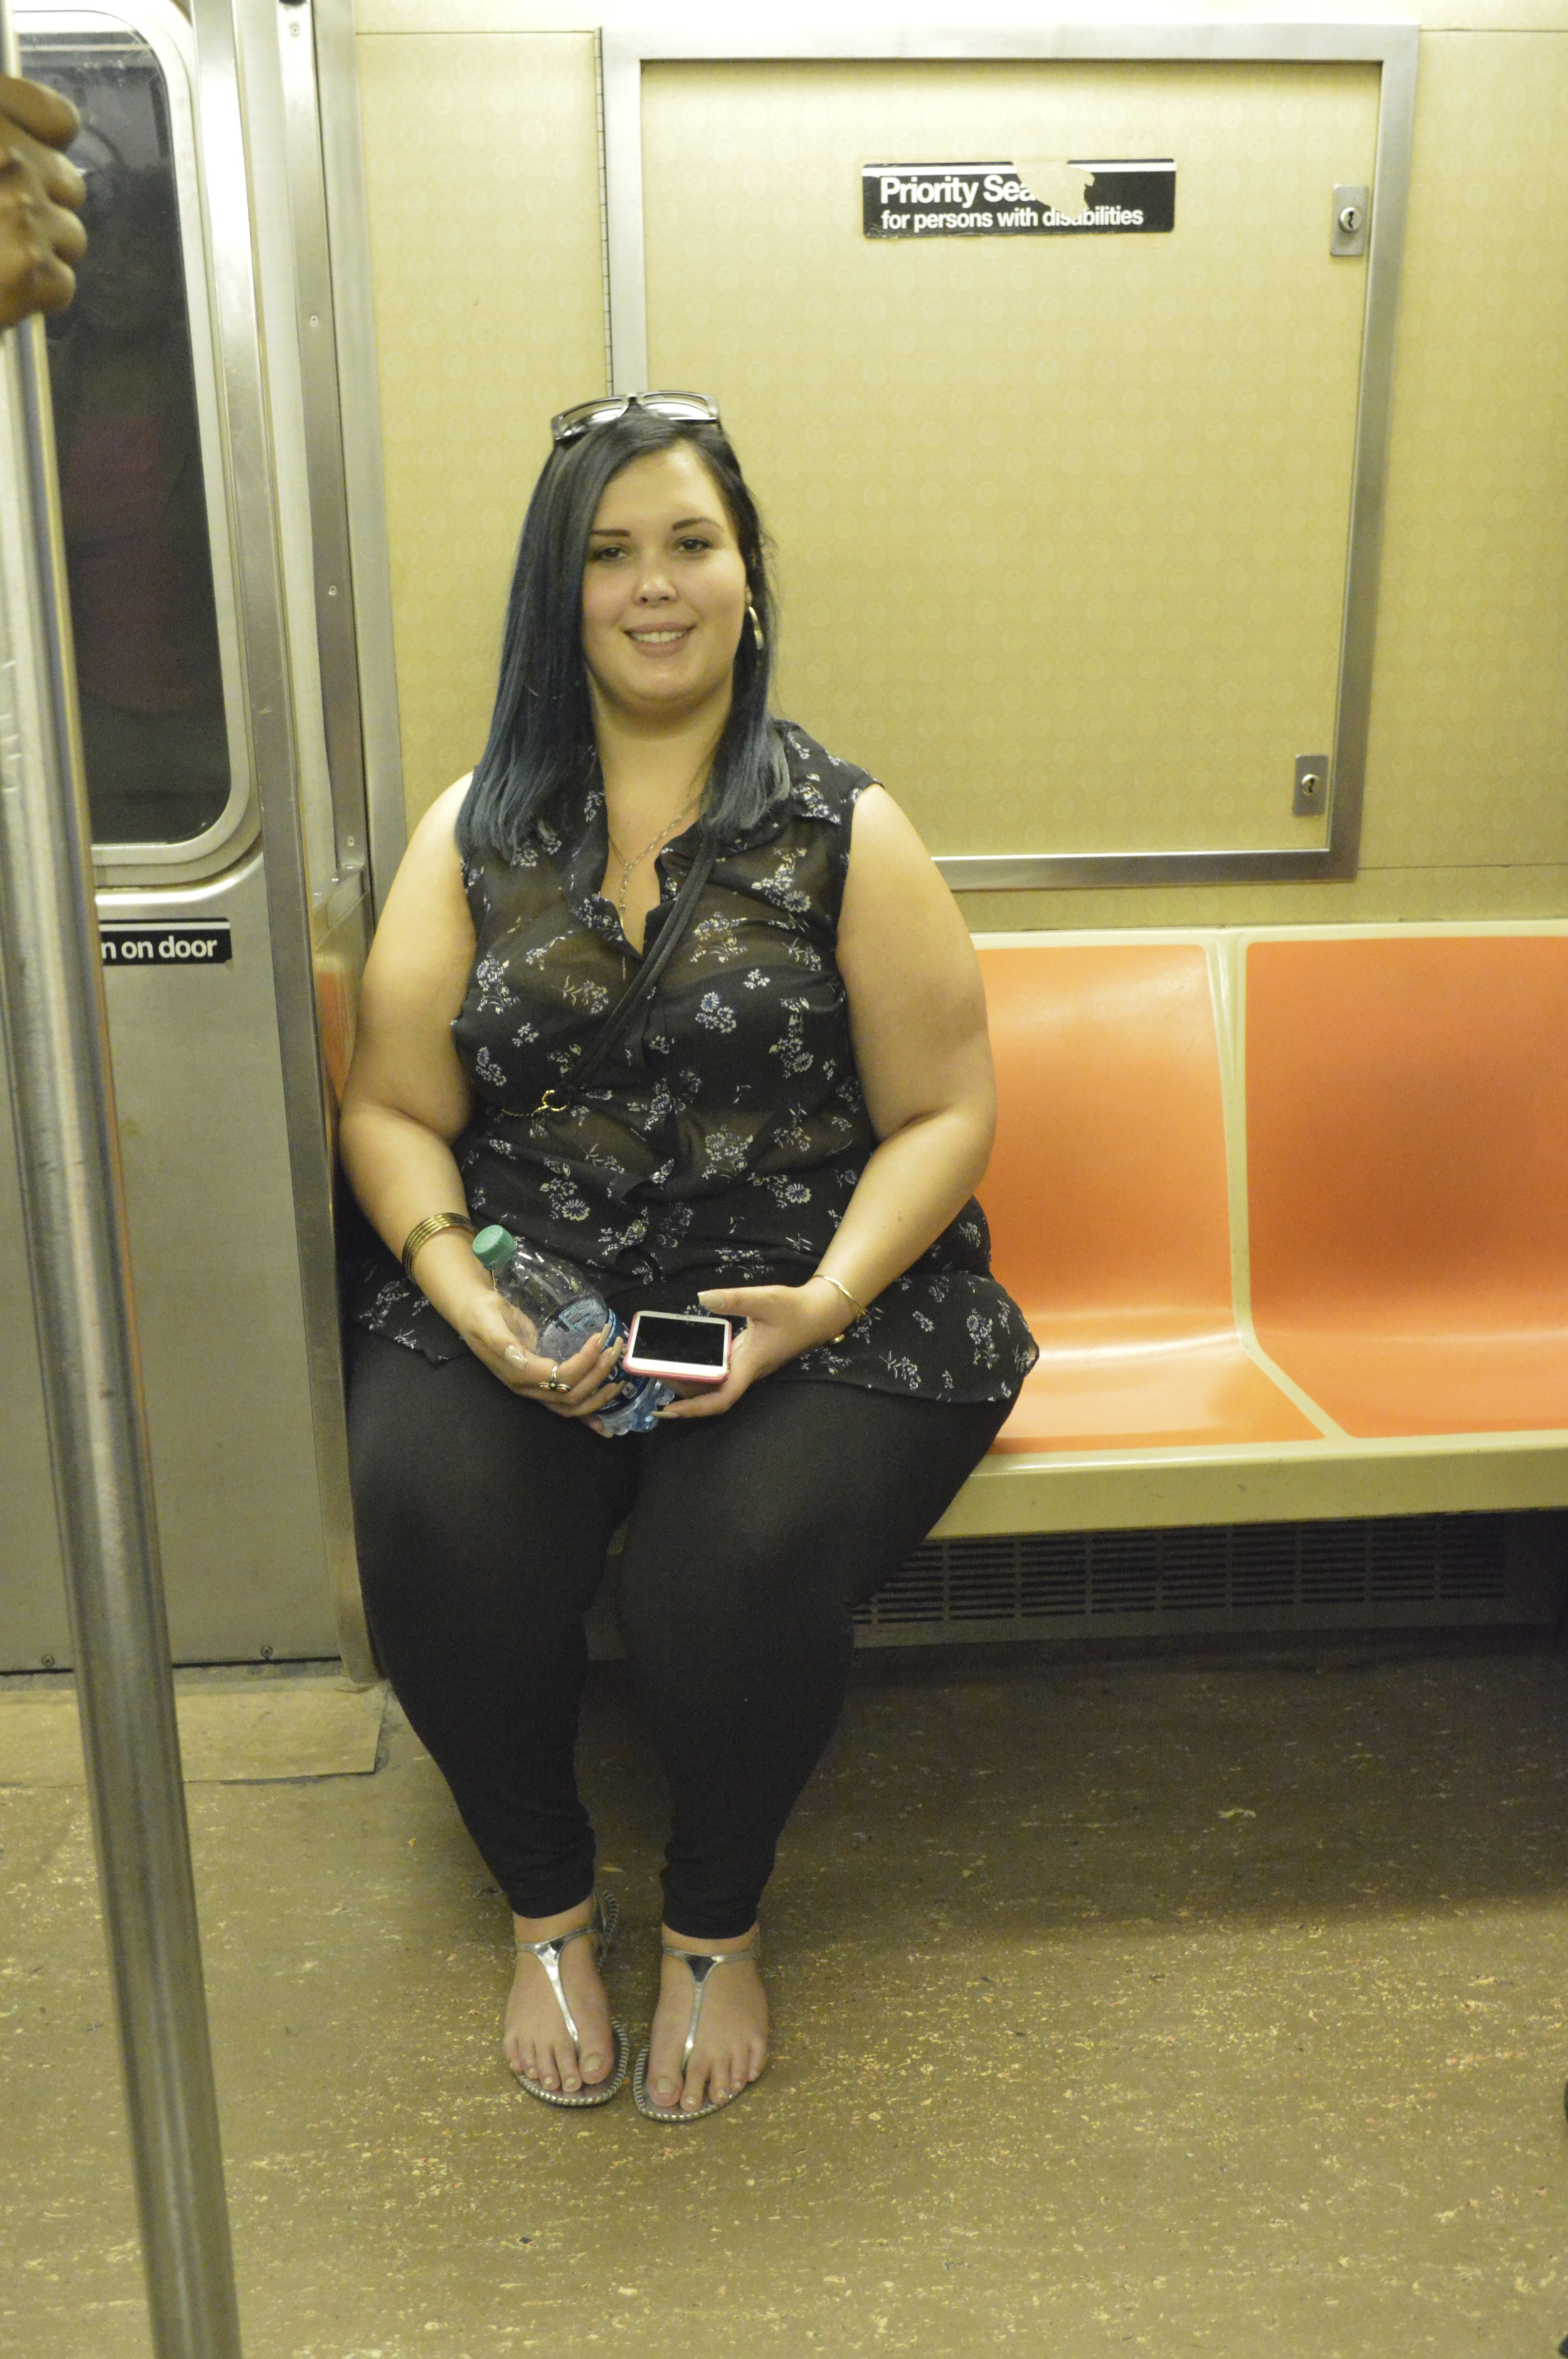 nyc, subway, harlem, plus size clothing, evans